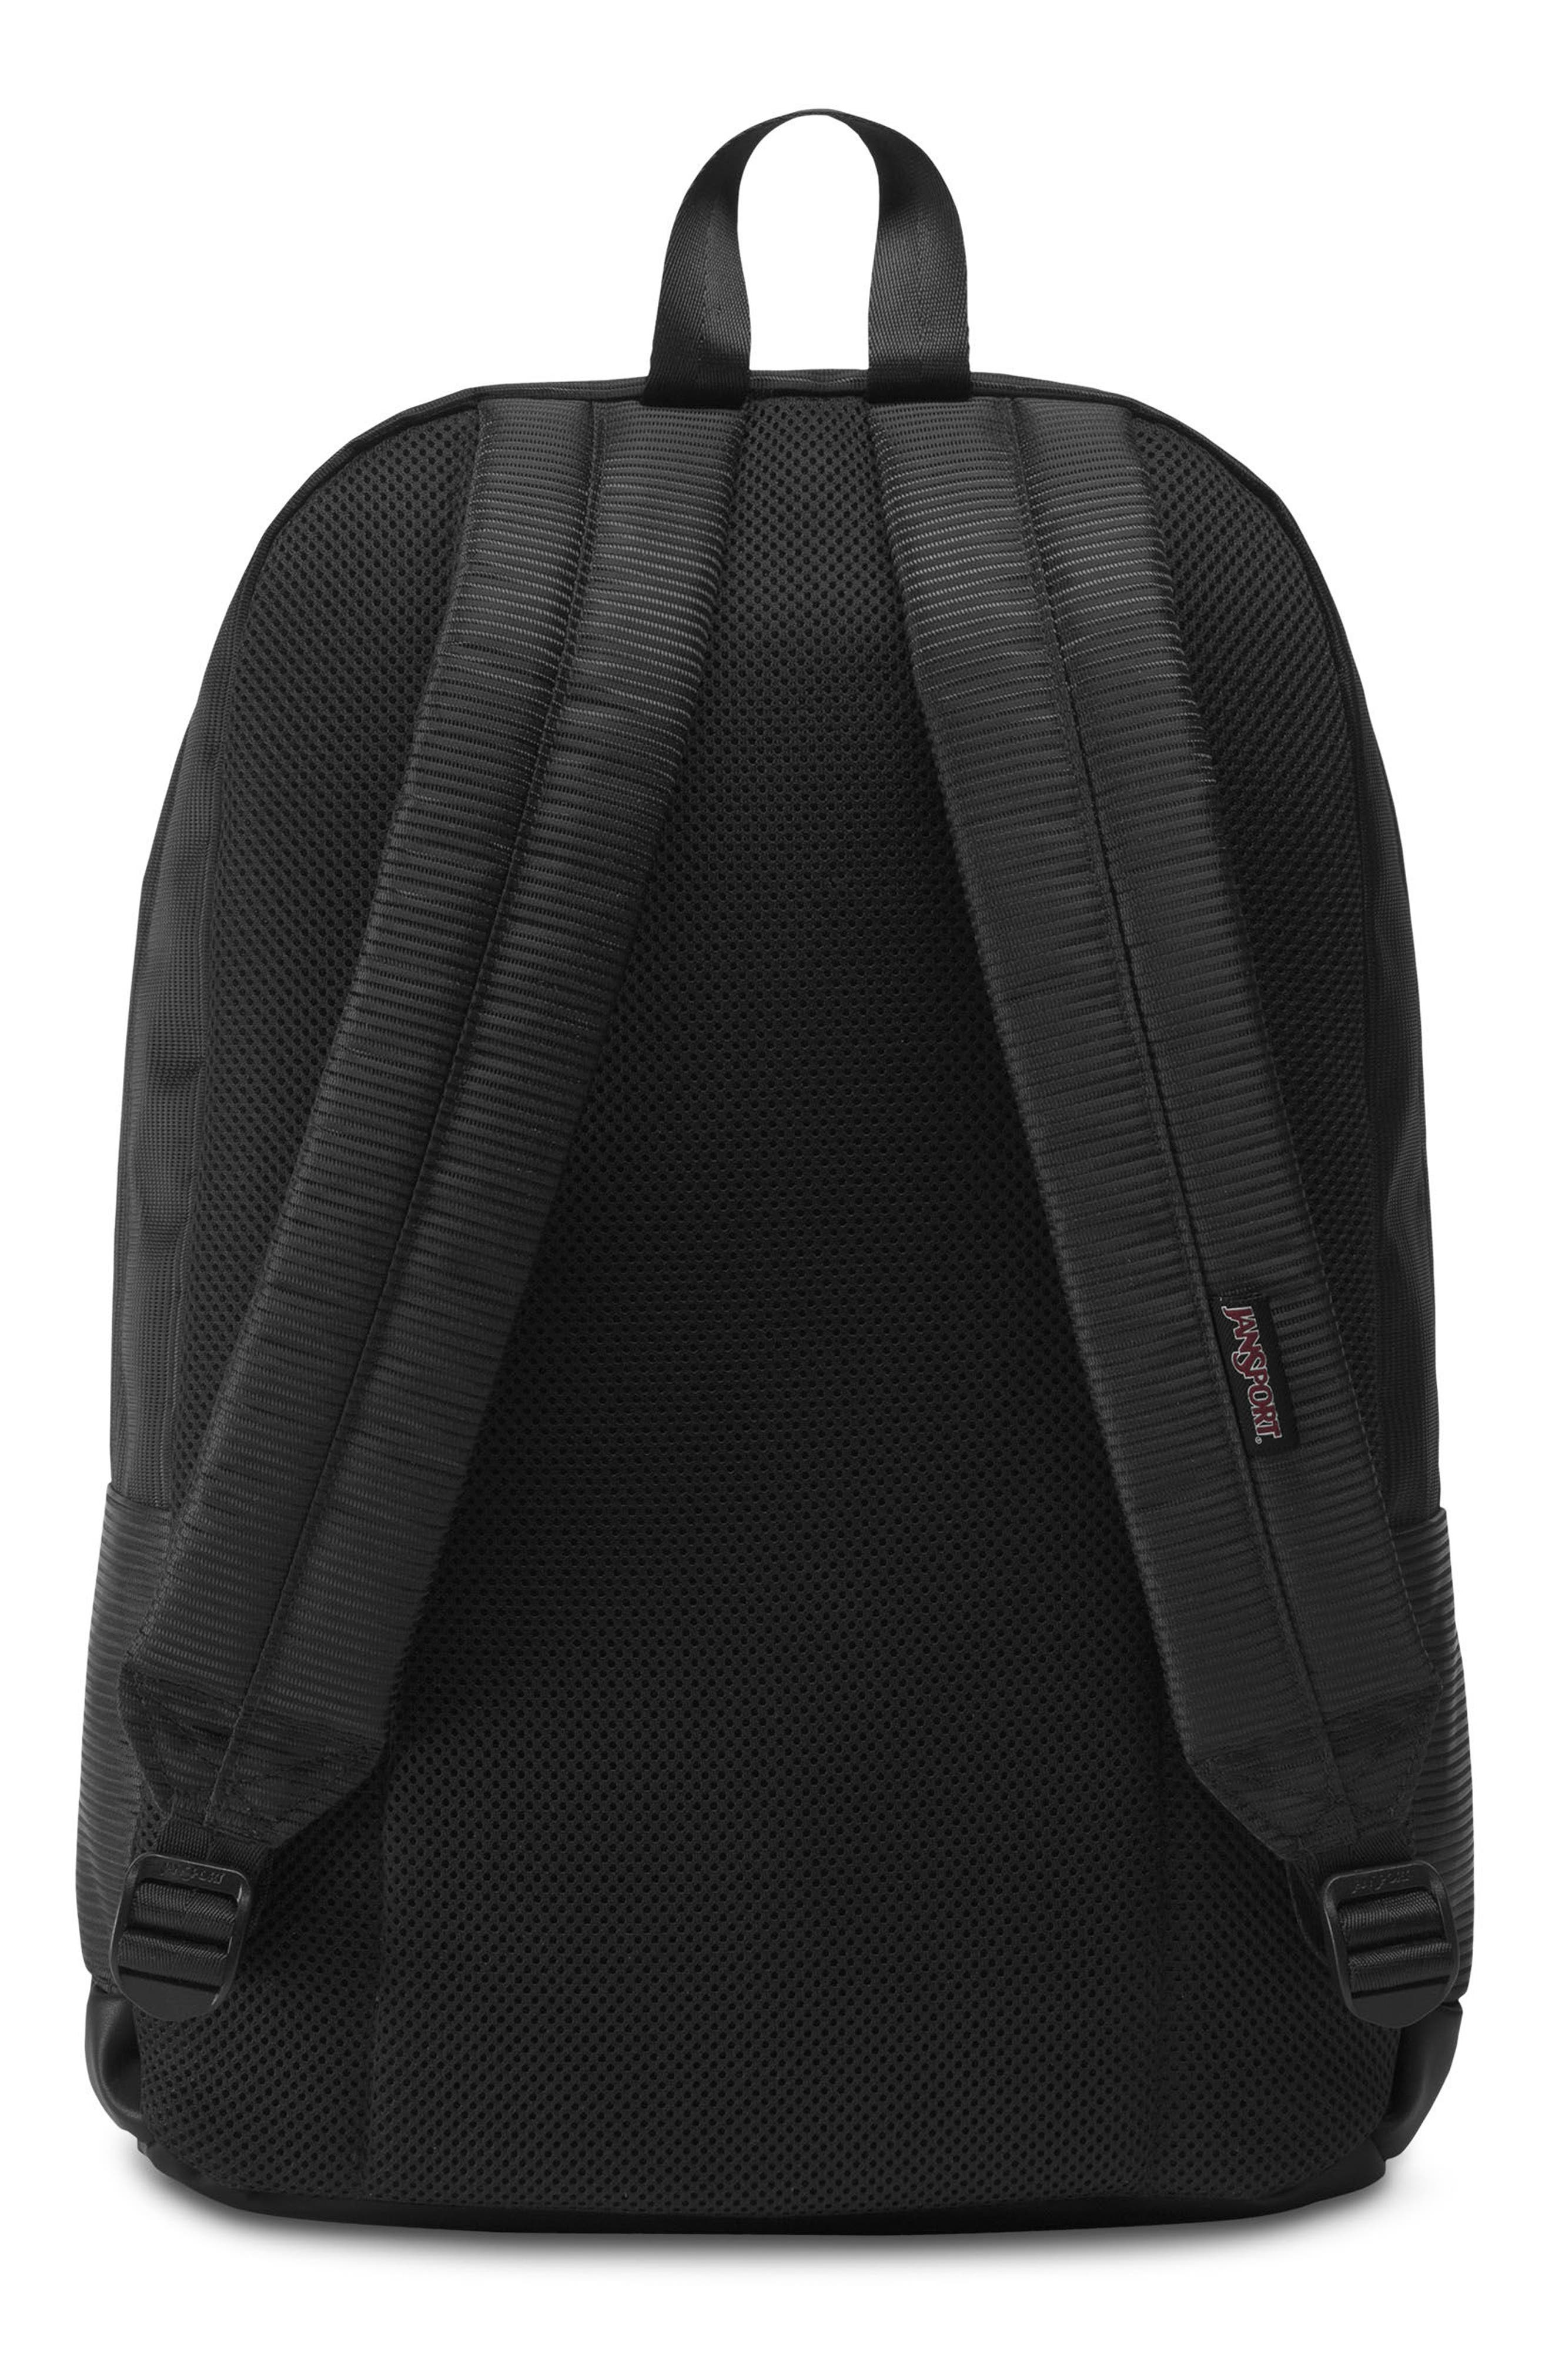 Axiom Backpack,                             Alternate thumbnail 3, color,                             Black Line